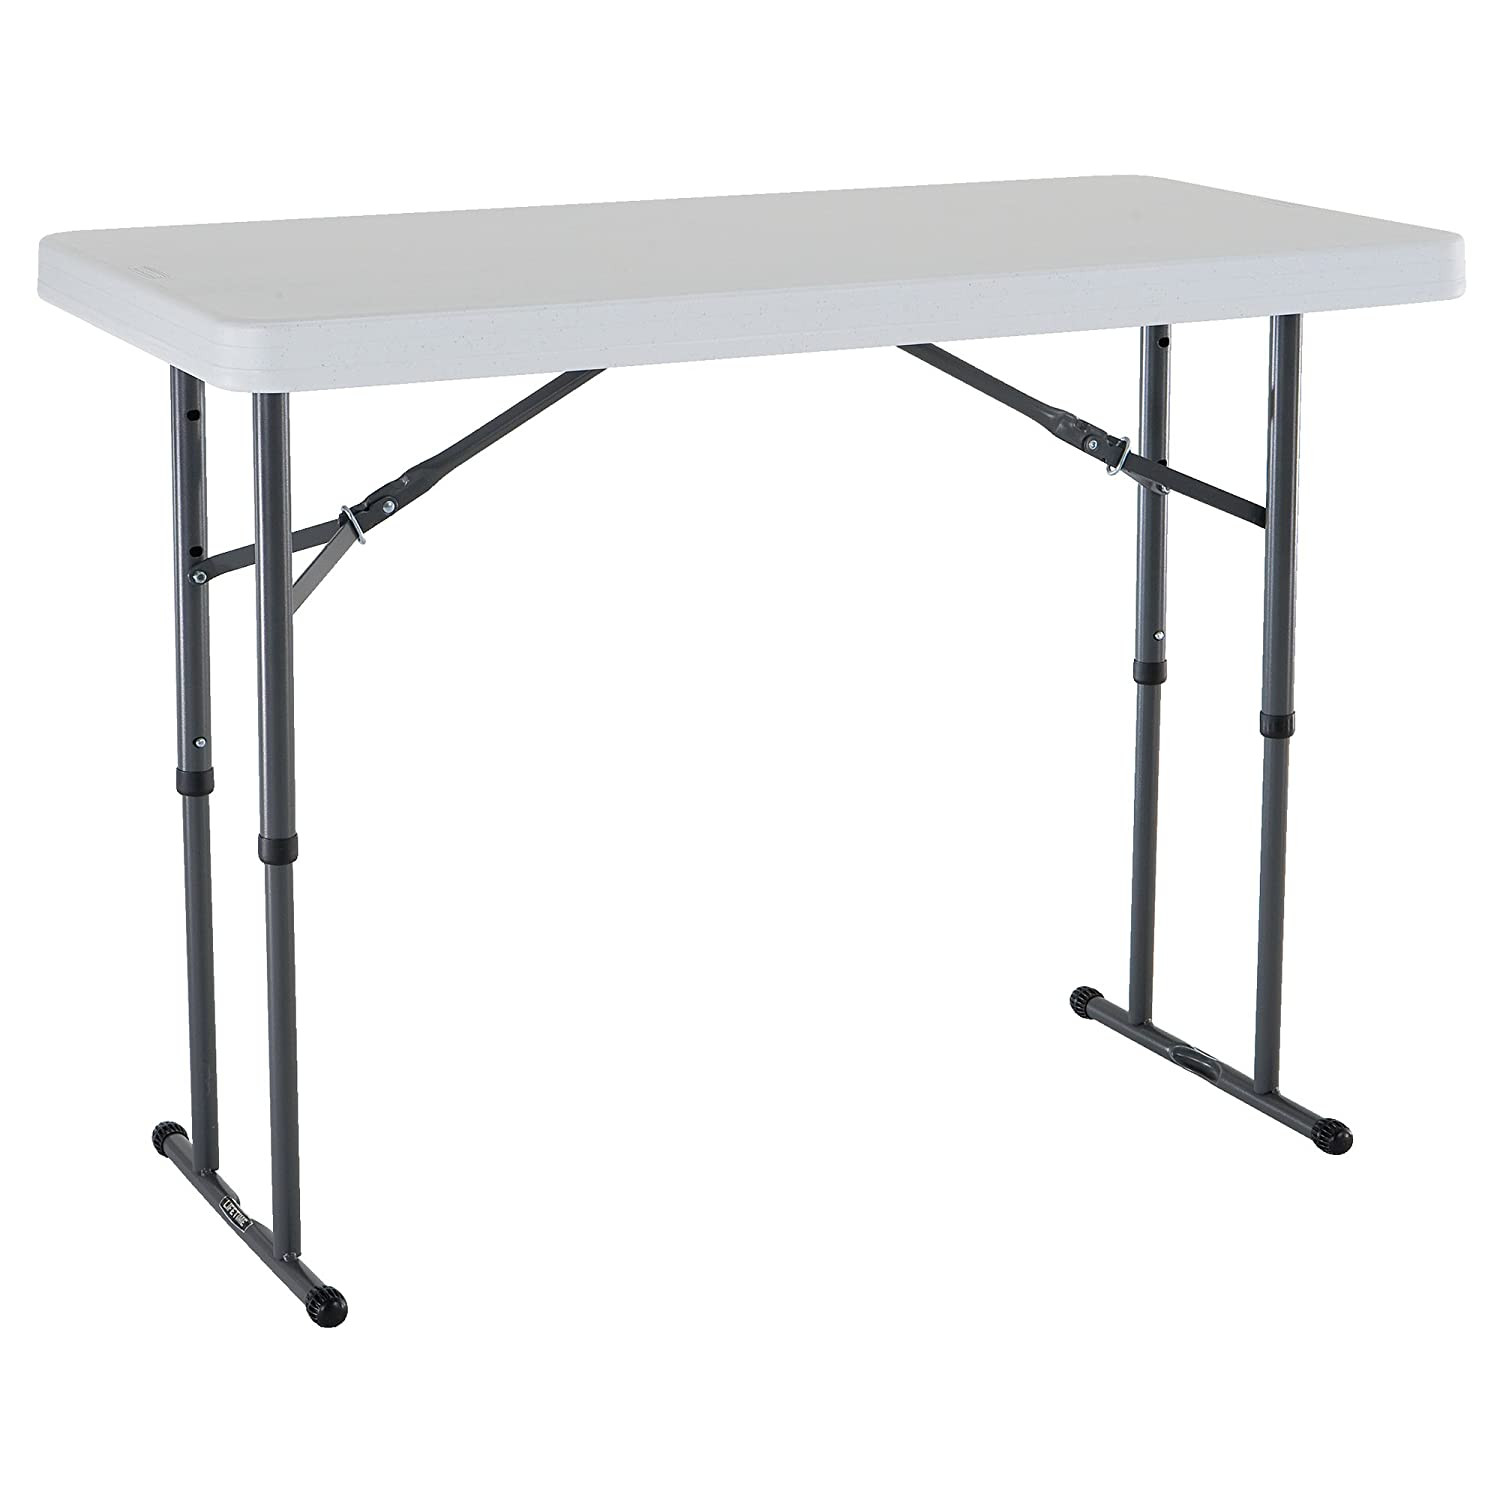 white ergovate desk height legs adjustable buydesign table